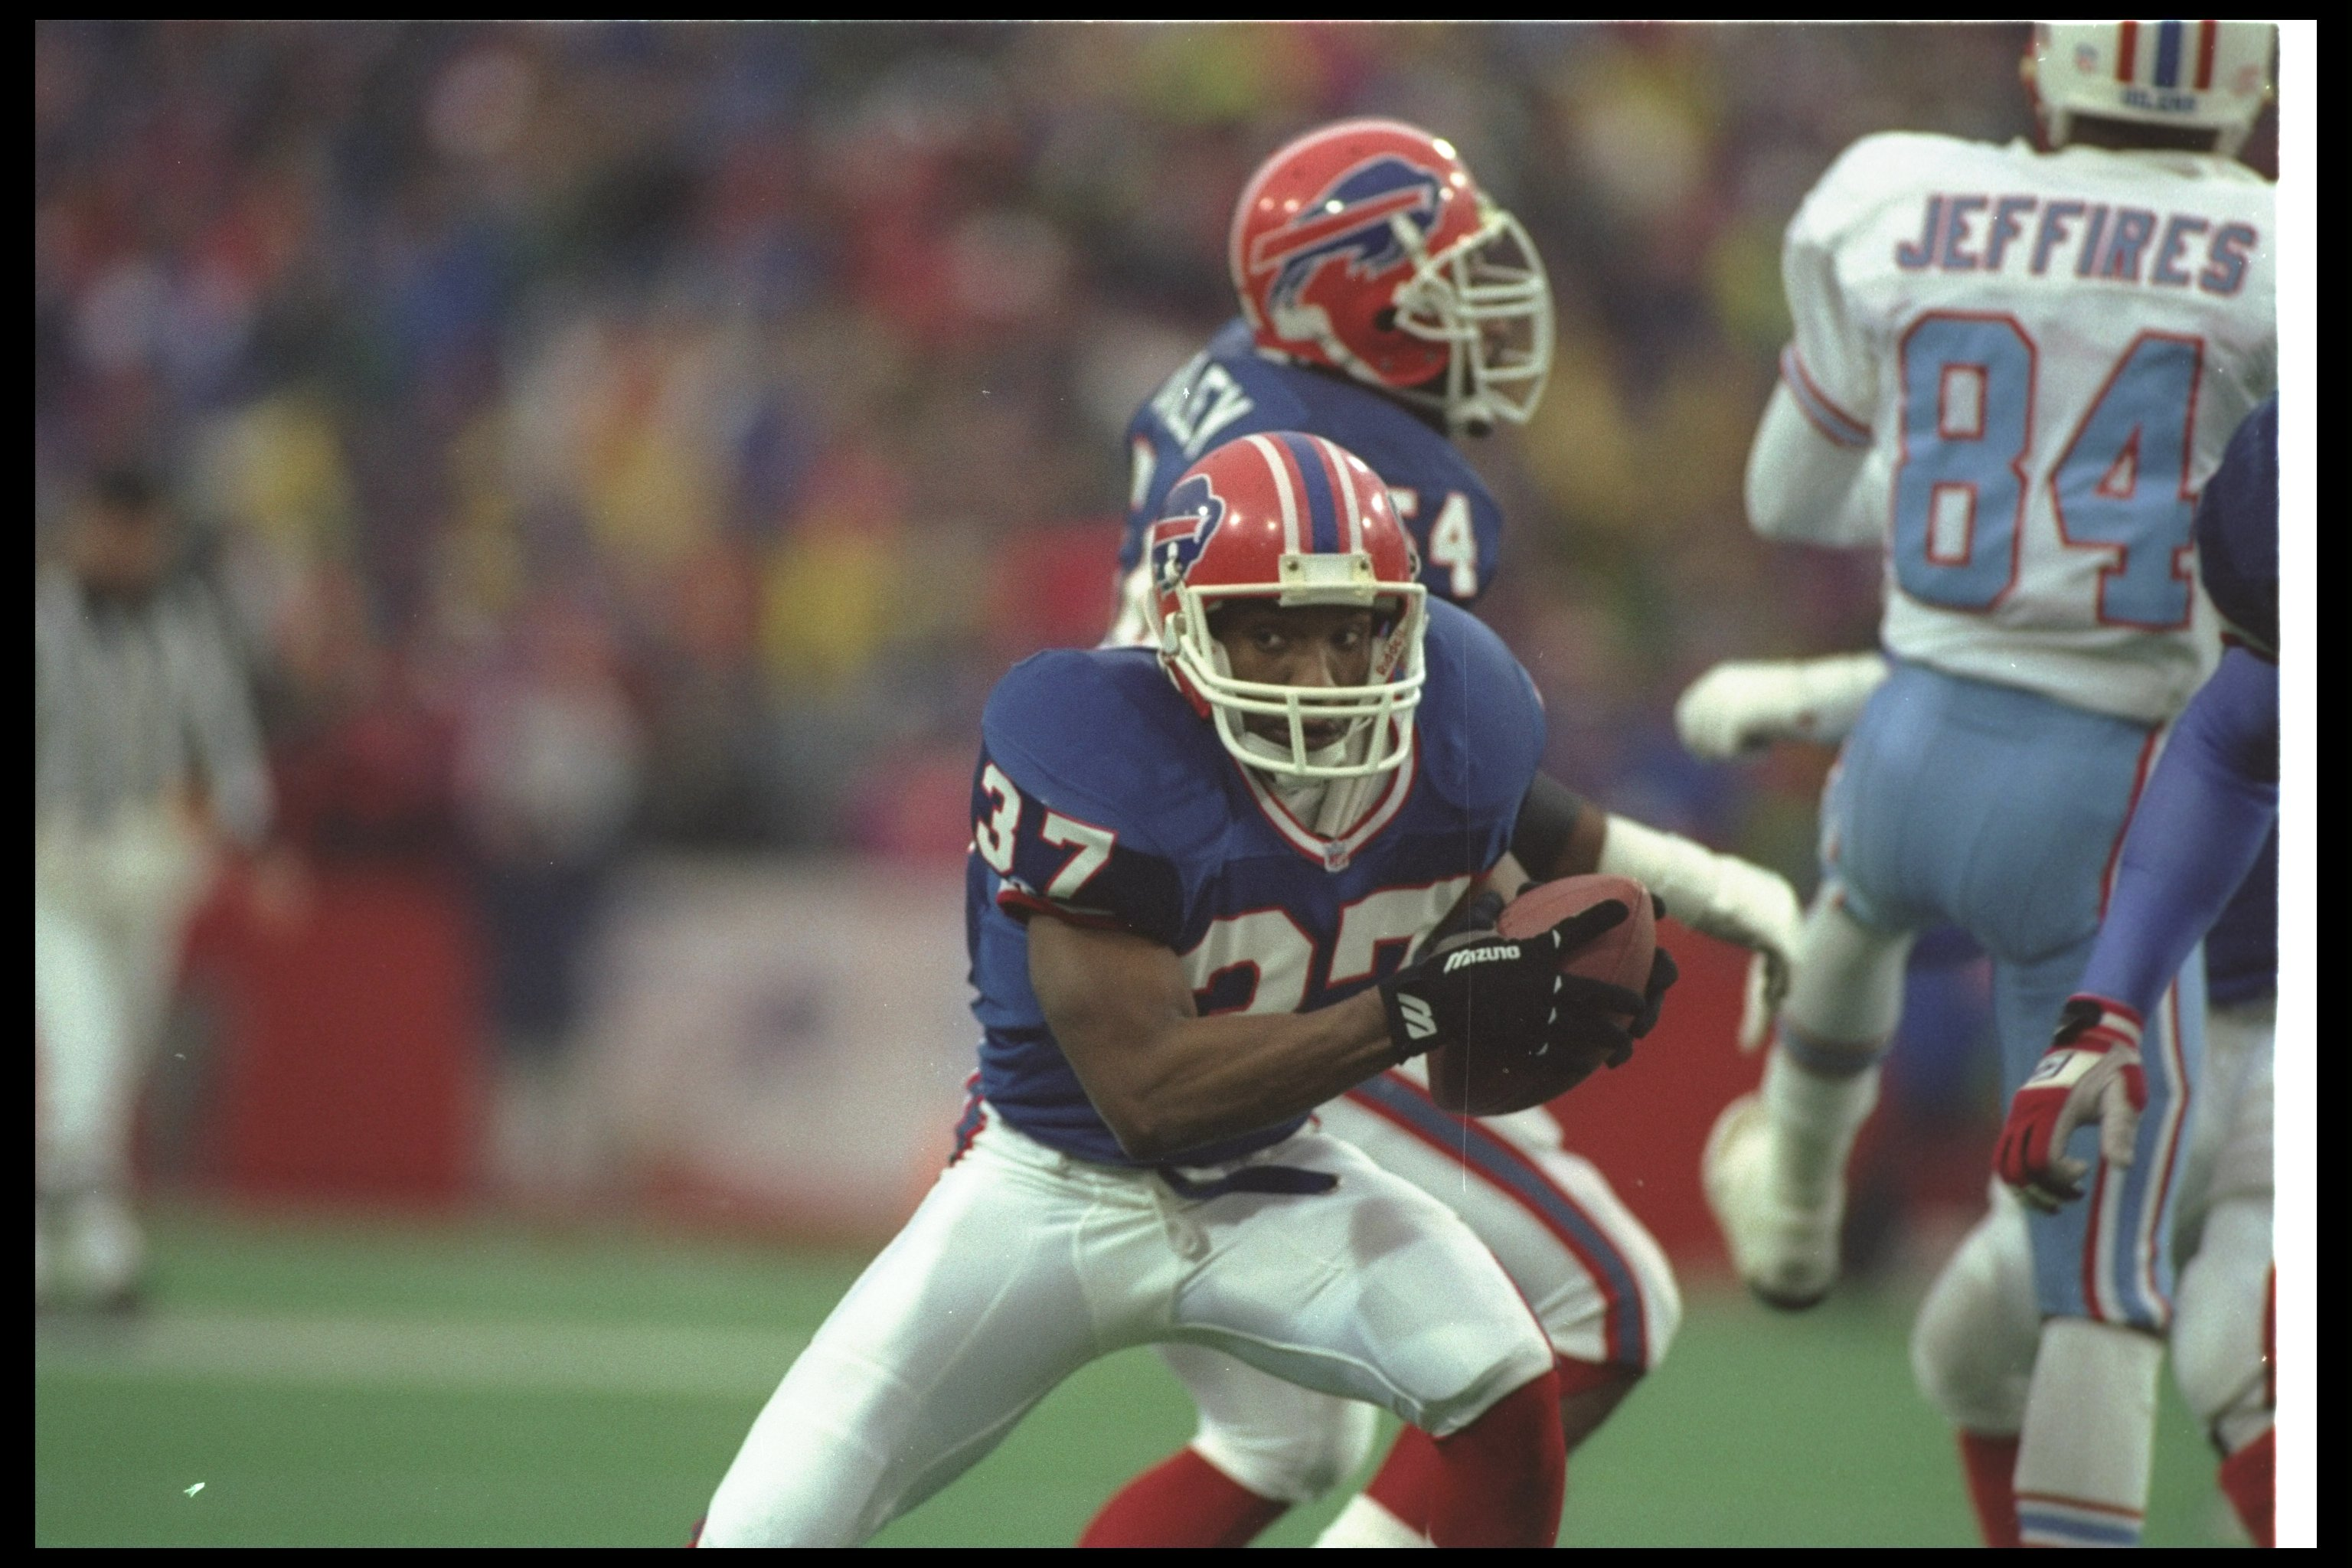 3 Jan 1993: Defensive back Nate Odomes of the Buffalo Bills runs with the ball after making an interception during a playoff game against the Houston Oilers at Rich Stadium in Orchard Park, New York. The Bills won the game in overtime, 41-38.